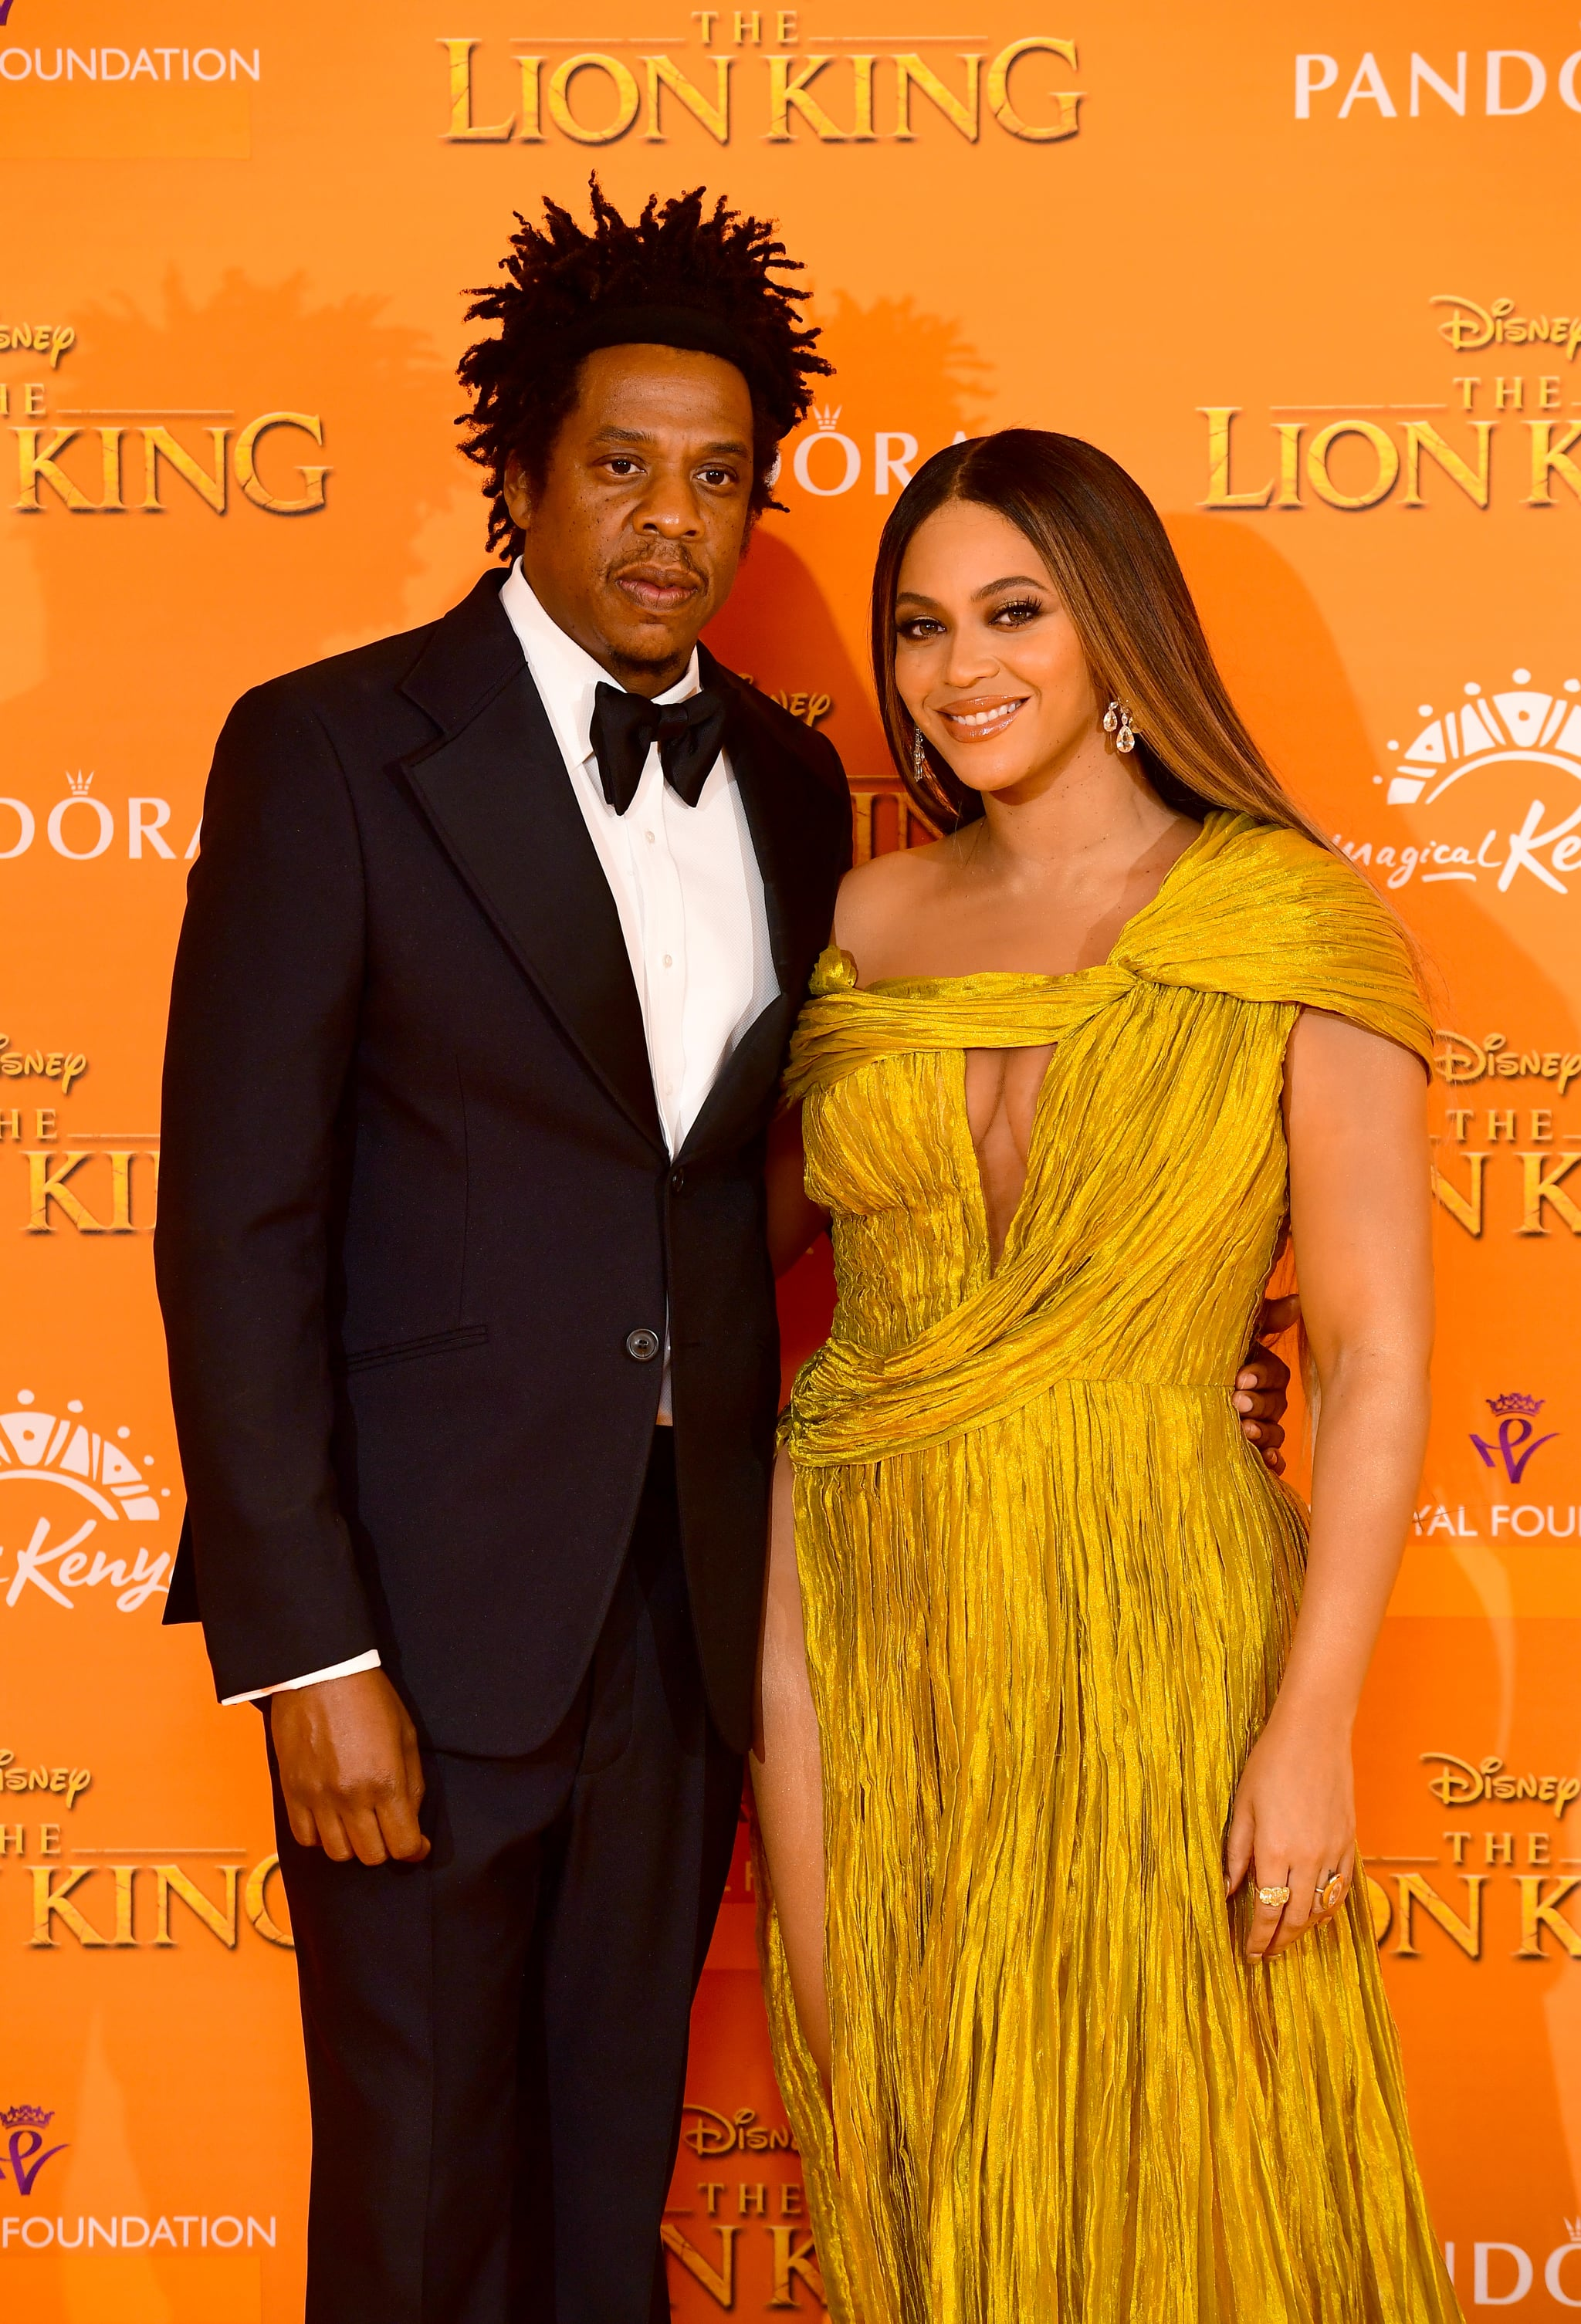 Jay-z and Beyonce attending Disney's The Lion King European Premiere held in Leicester Square, London. (Photo by Ian West/PA Images via Getty Images)